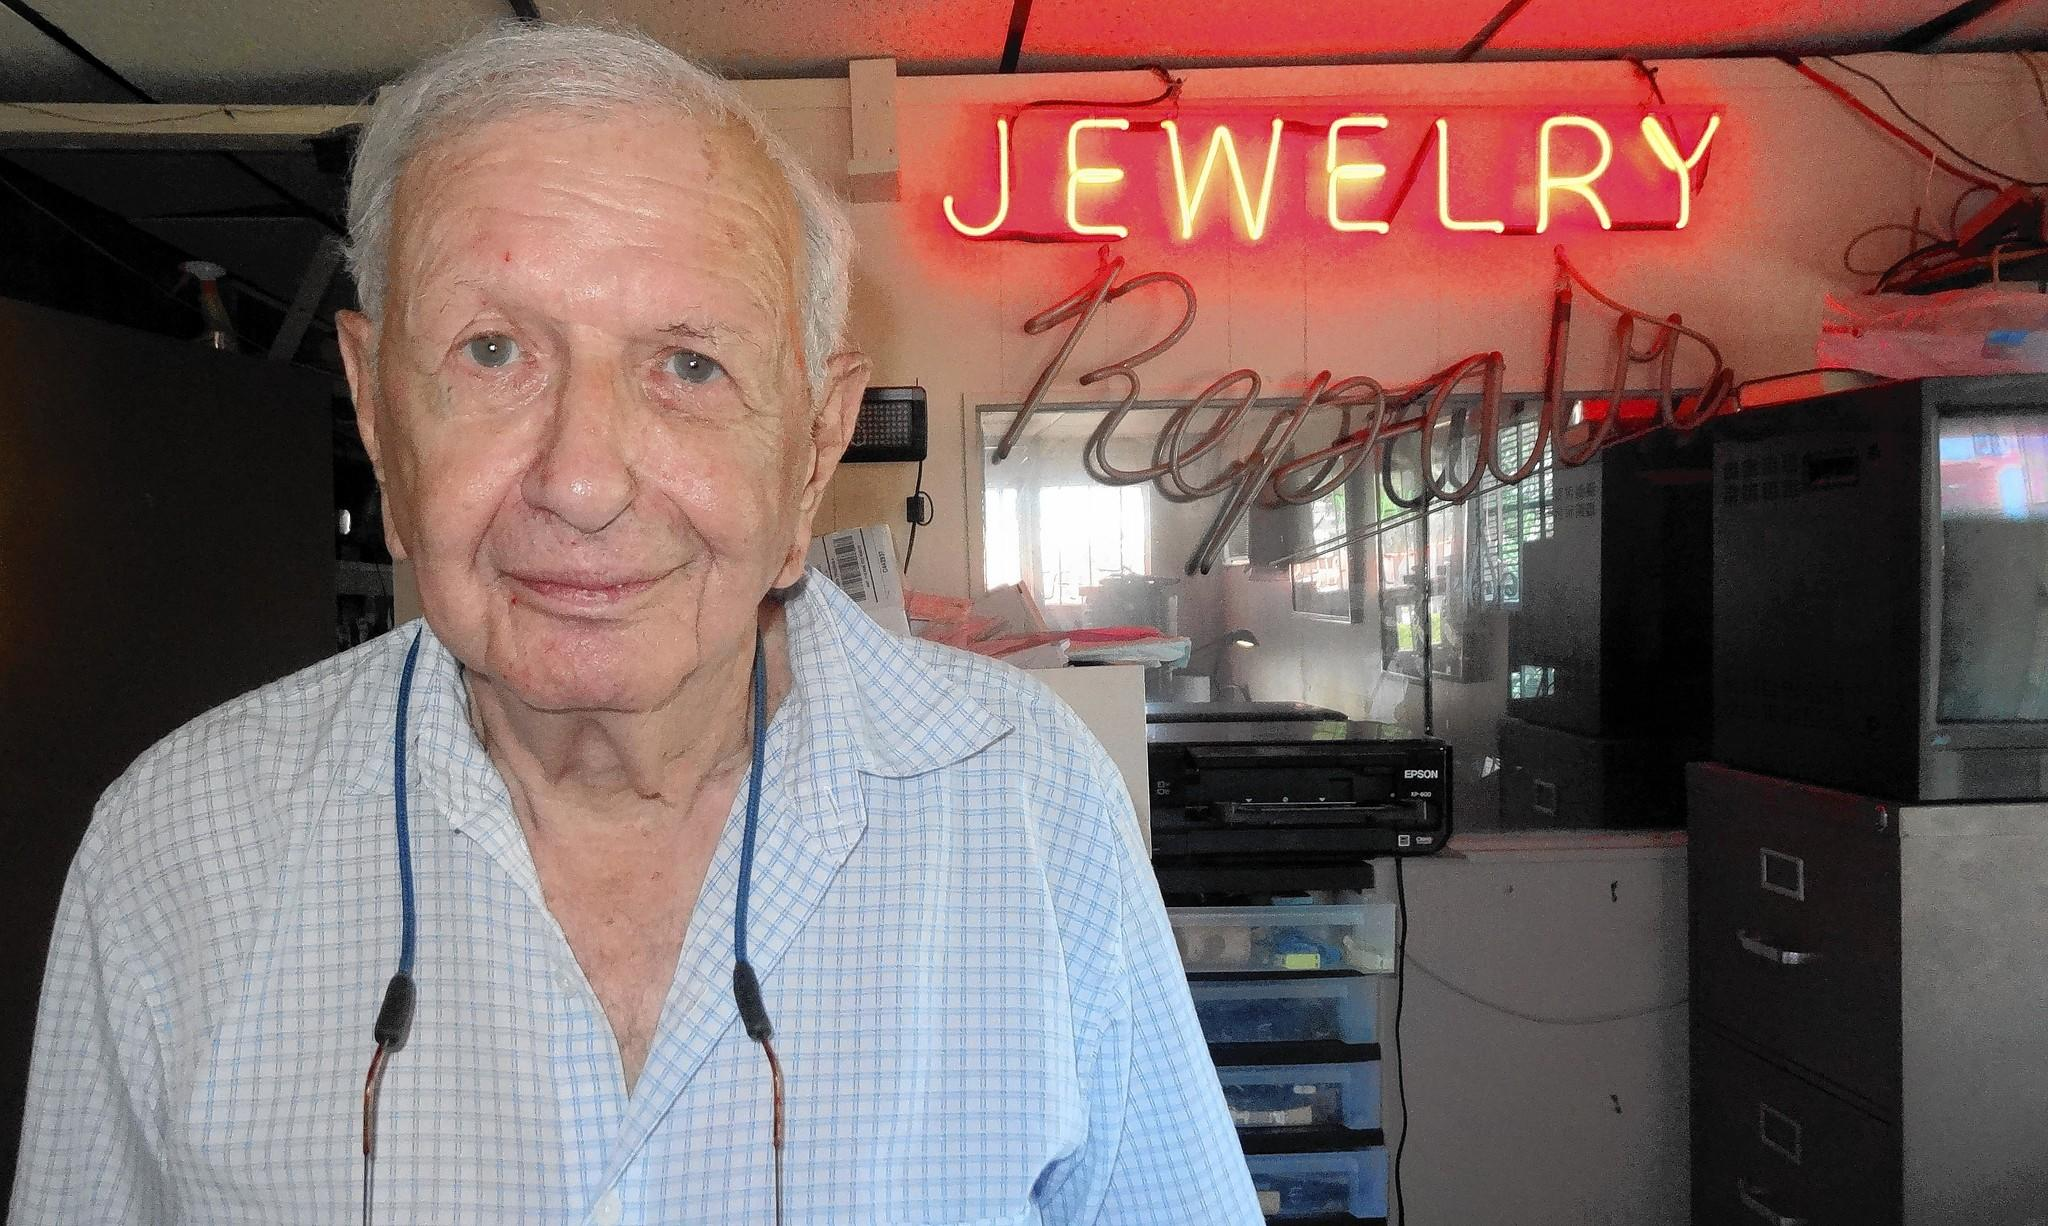 A man tried to rob Arthur Lewis, 89, owner of the Jewelry Exchange on Saturday but Lewis shot the robber instead.